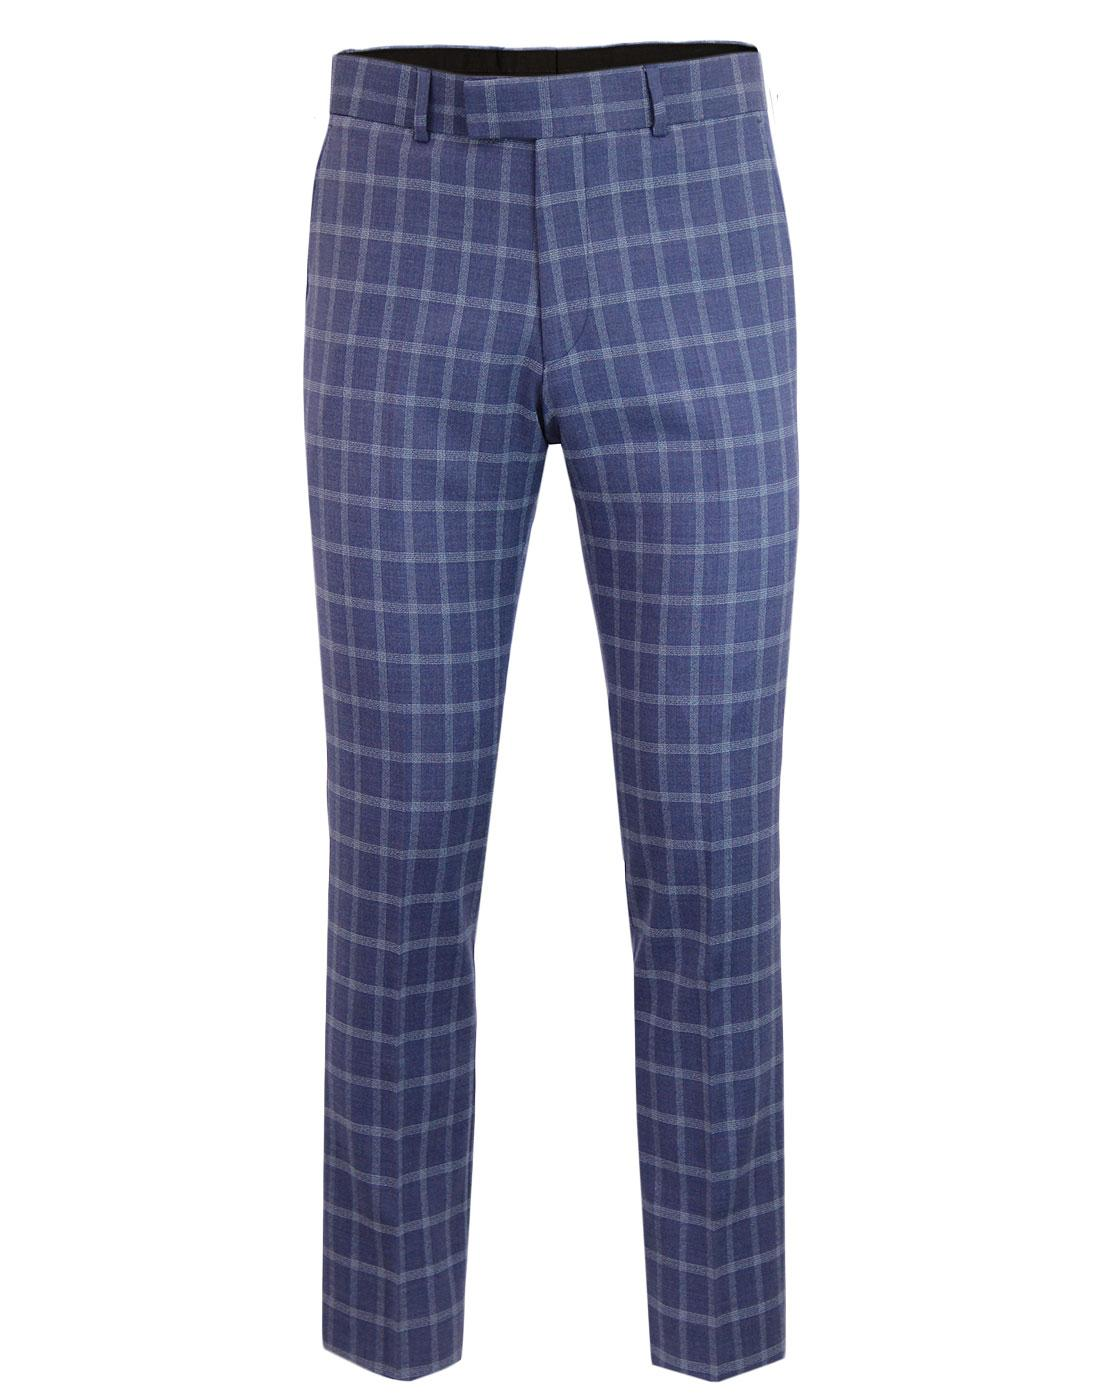 Men's Retro 60s Mod Check Slim Suit Trousers BLUE